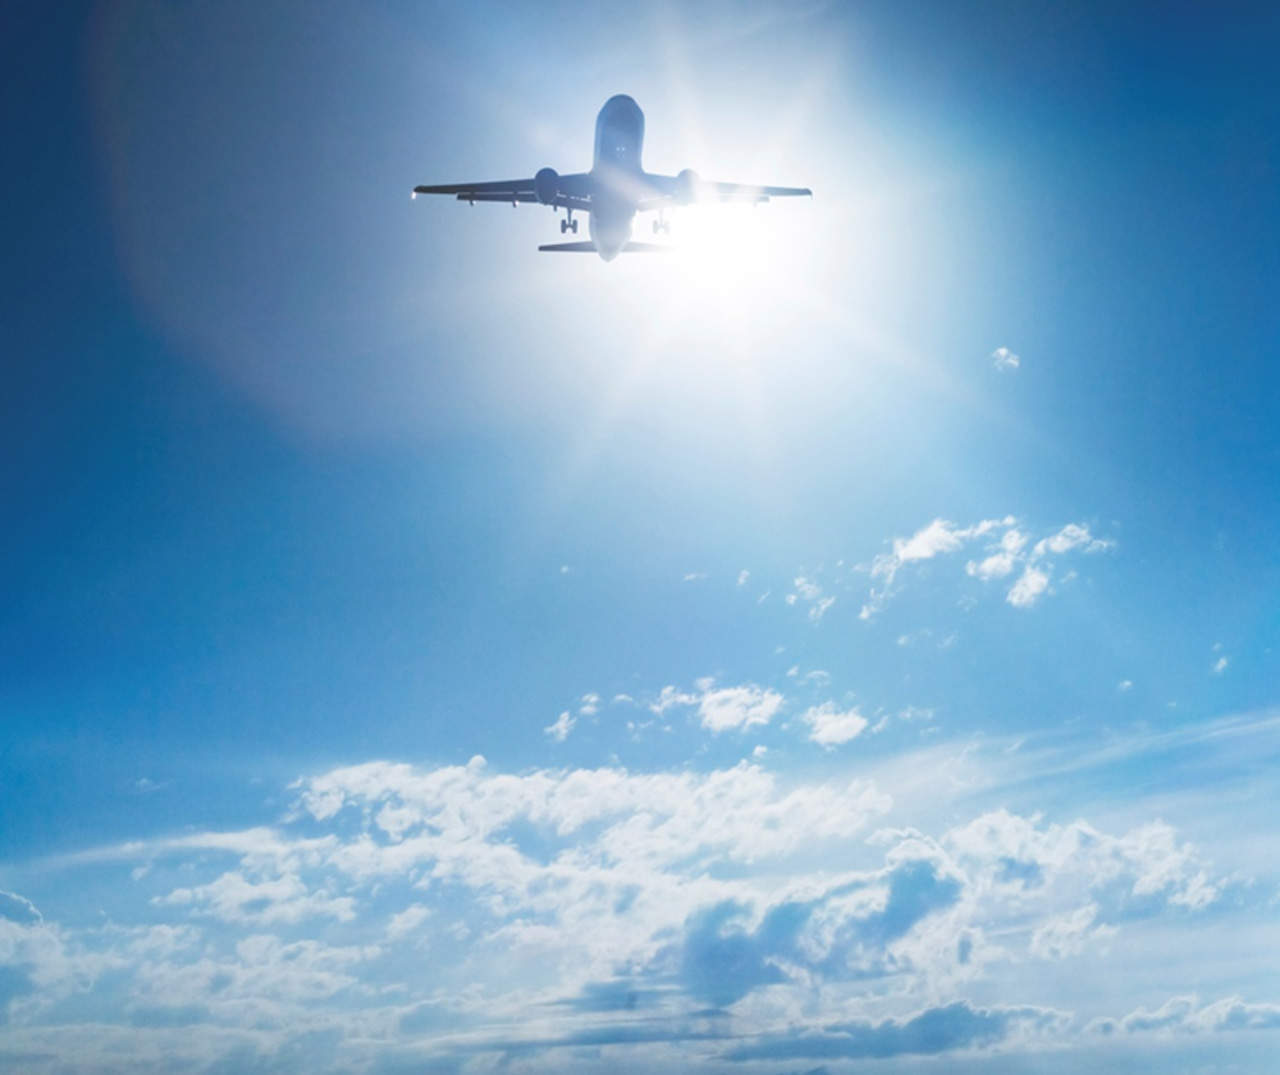 Working together to ensure a sustainable future for uk aviation